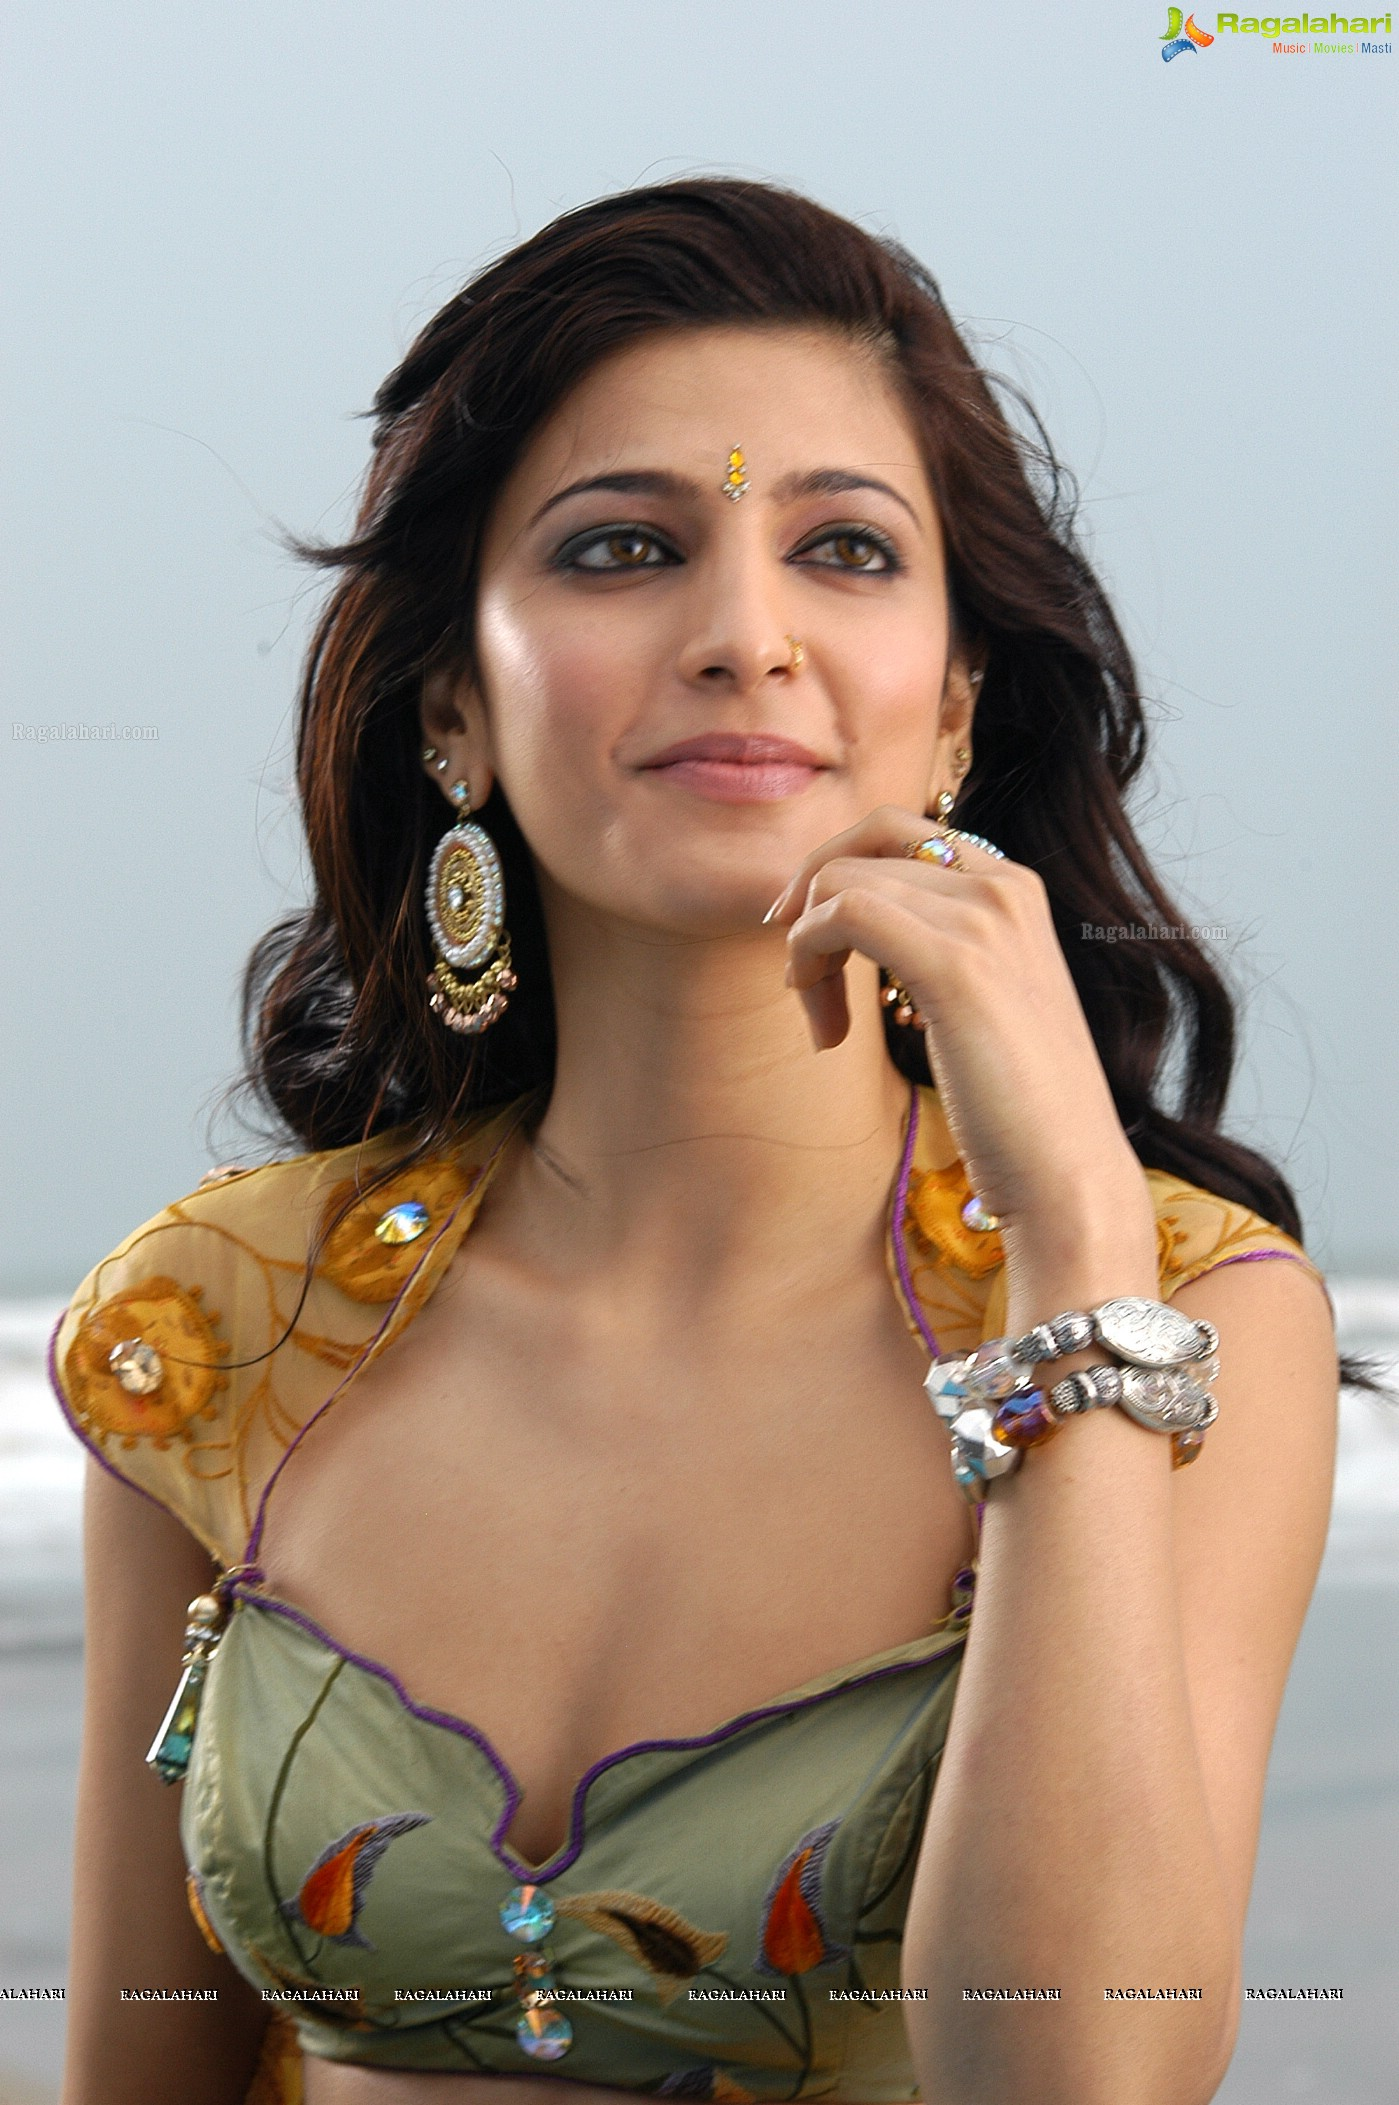 Communication on this topic: Melissa Kounnas, shruthi-haasan/